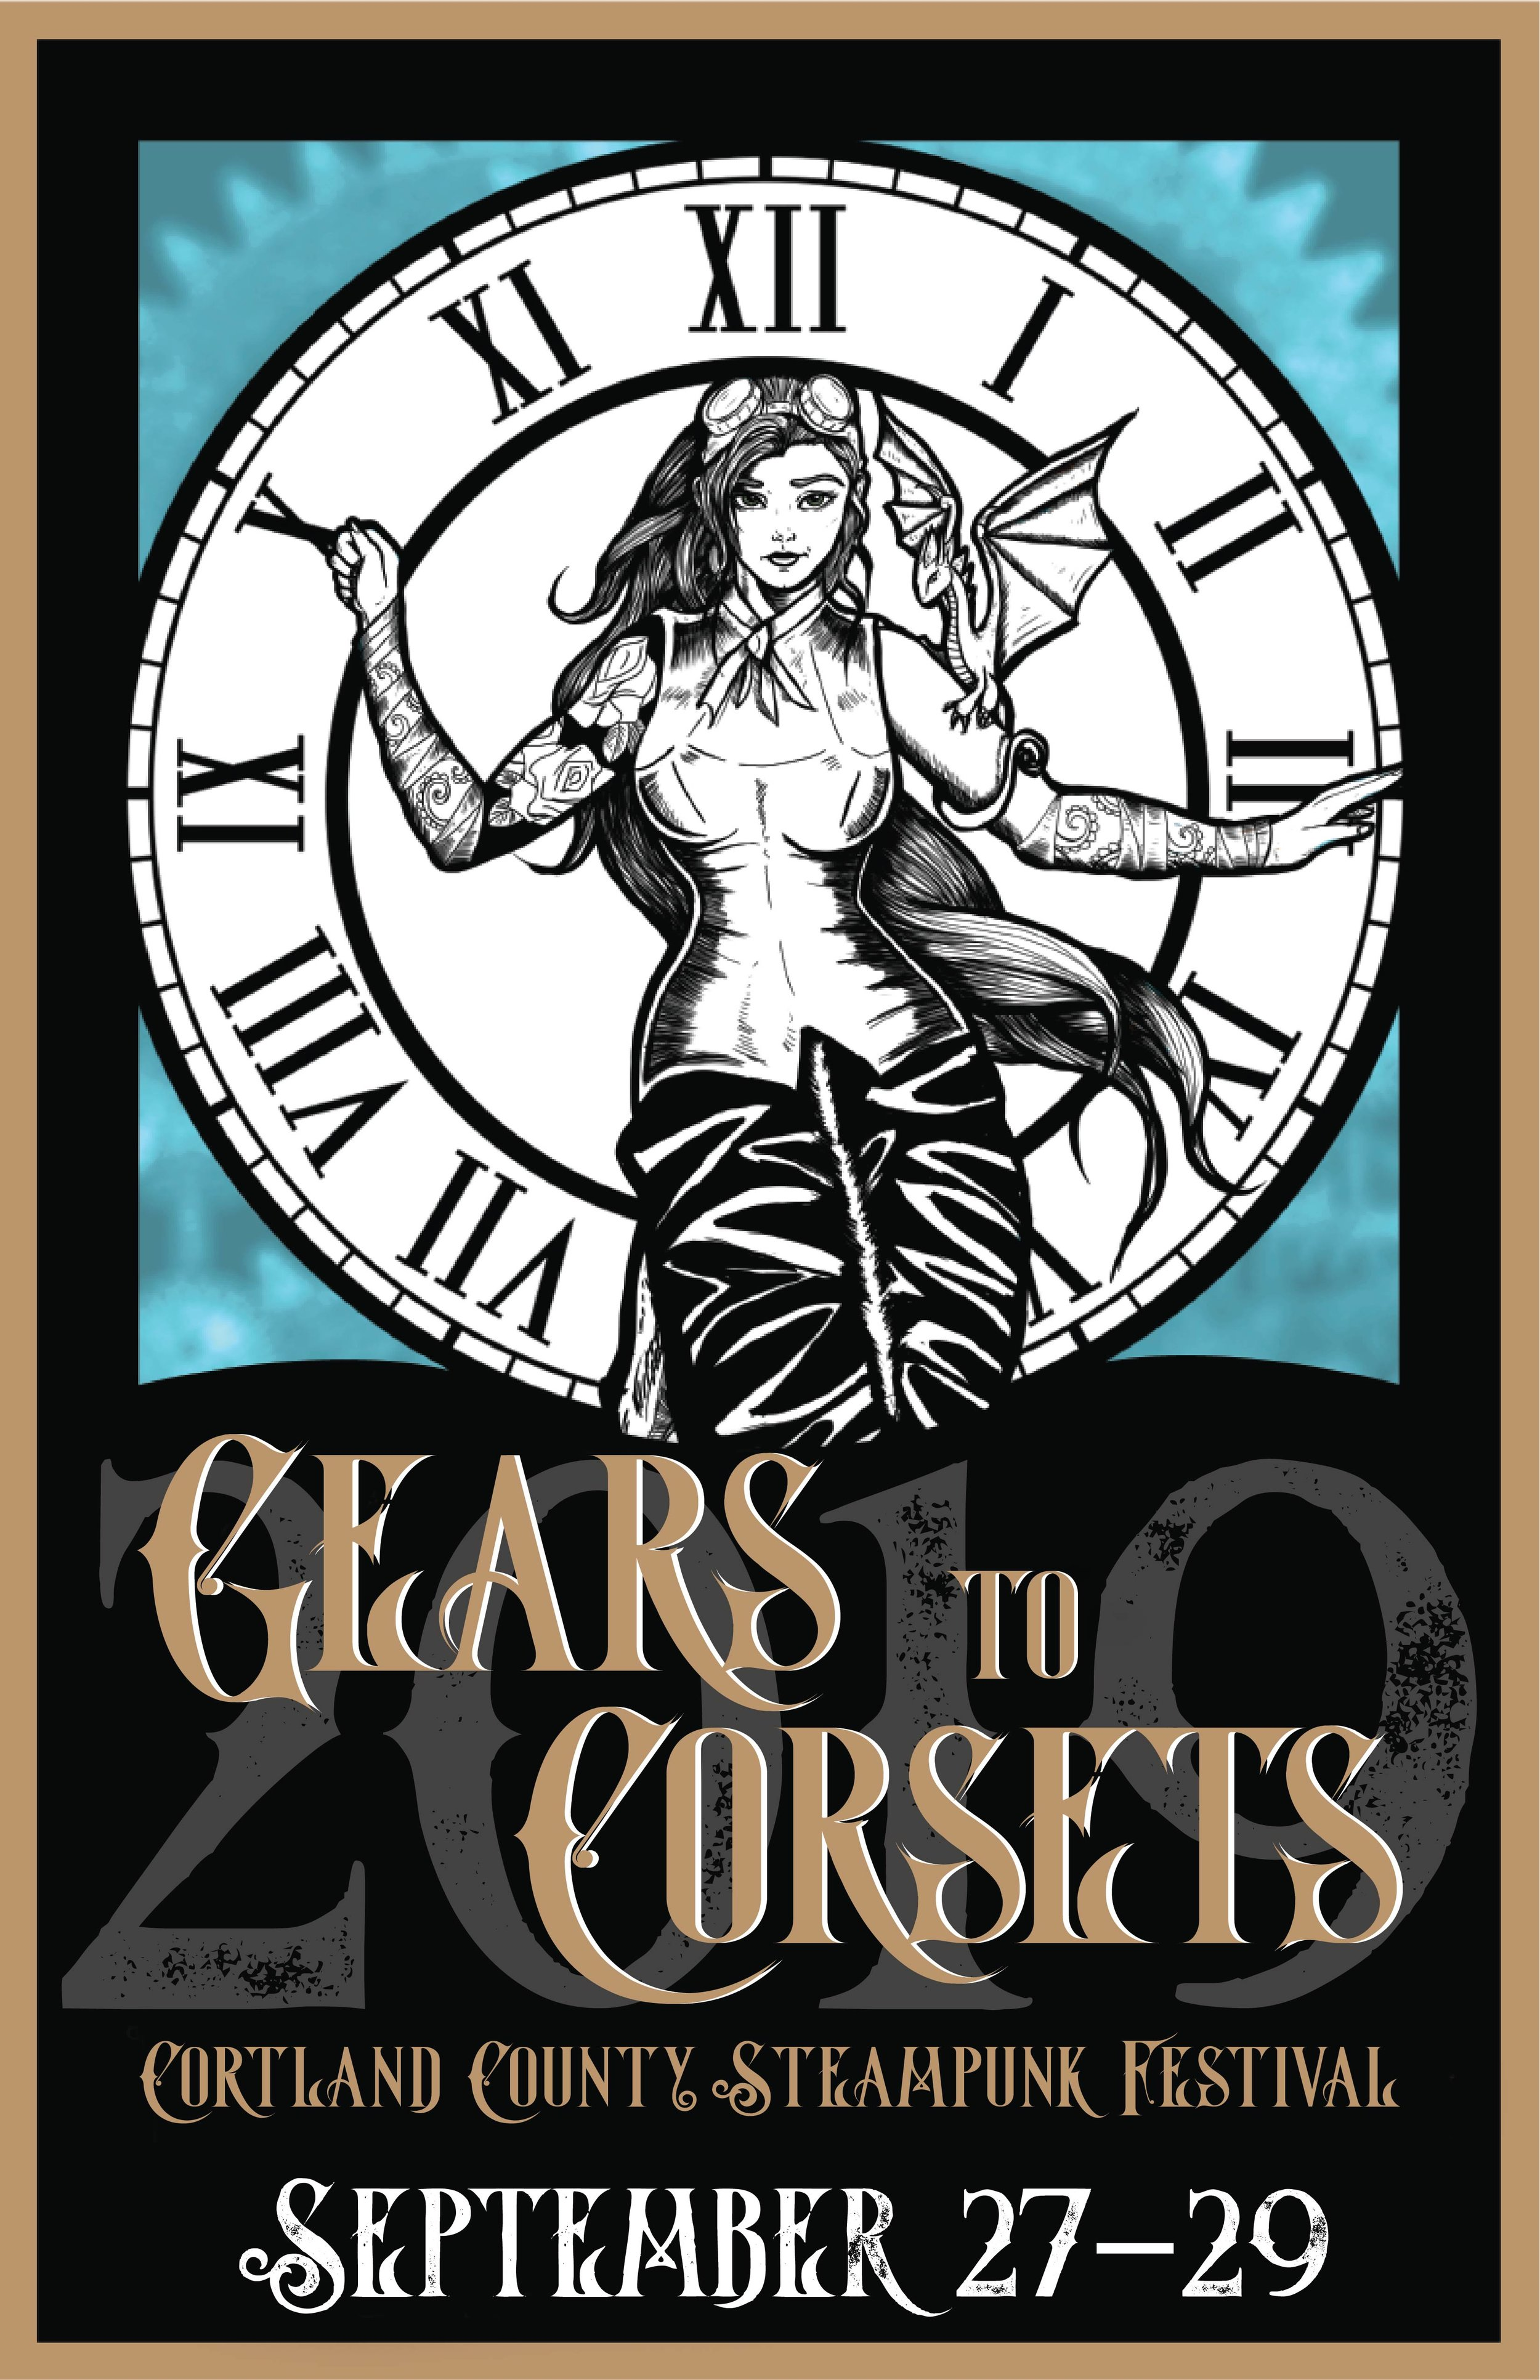 Poster design for Gears to Corsets Cortland County Steampunk Festival